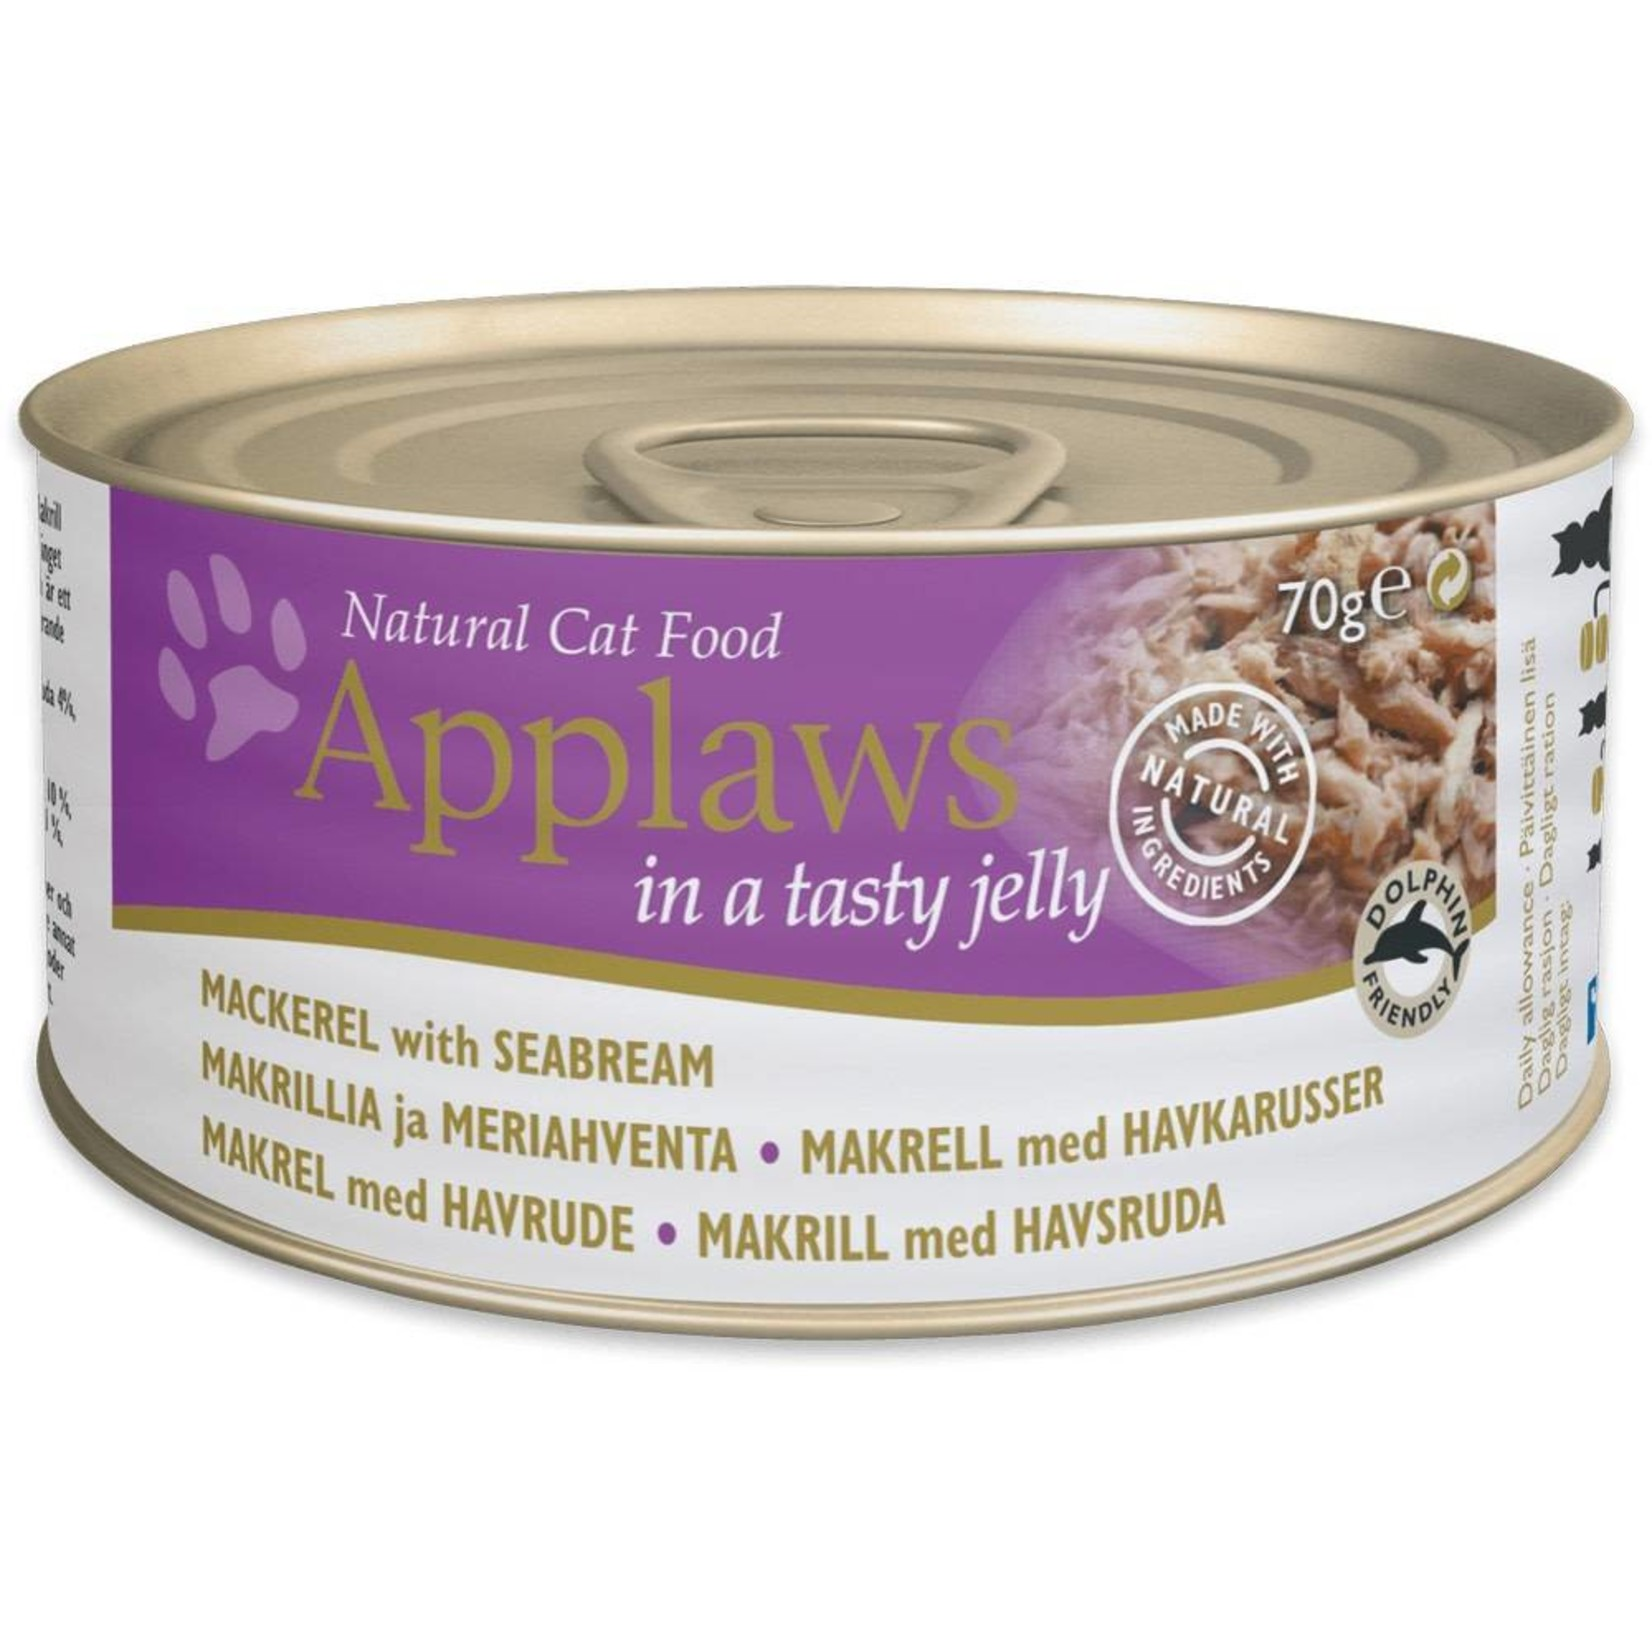 Applaws Cat Wet Food Mackerel with Seabream, 70g